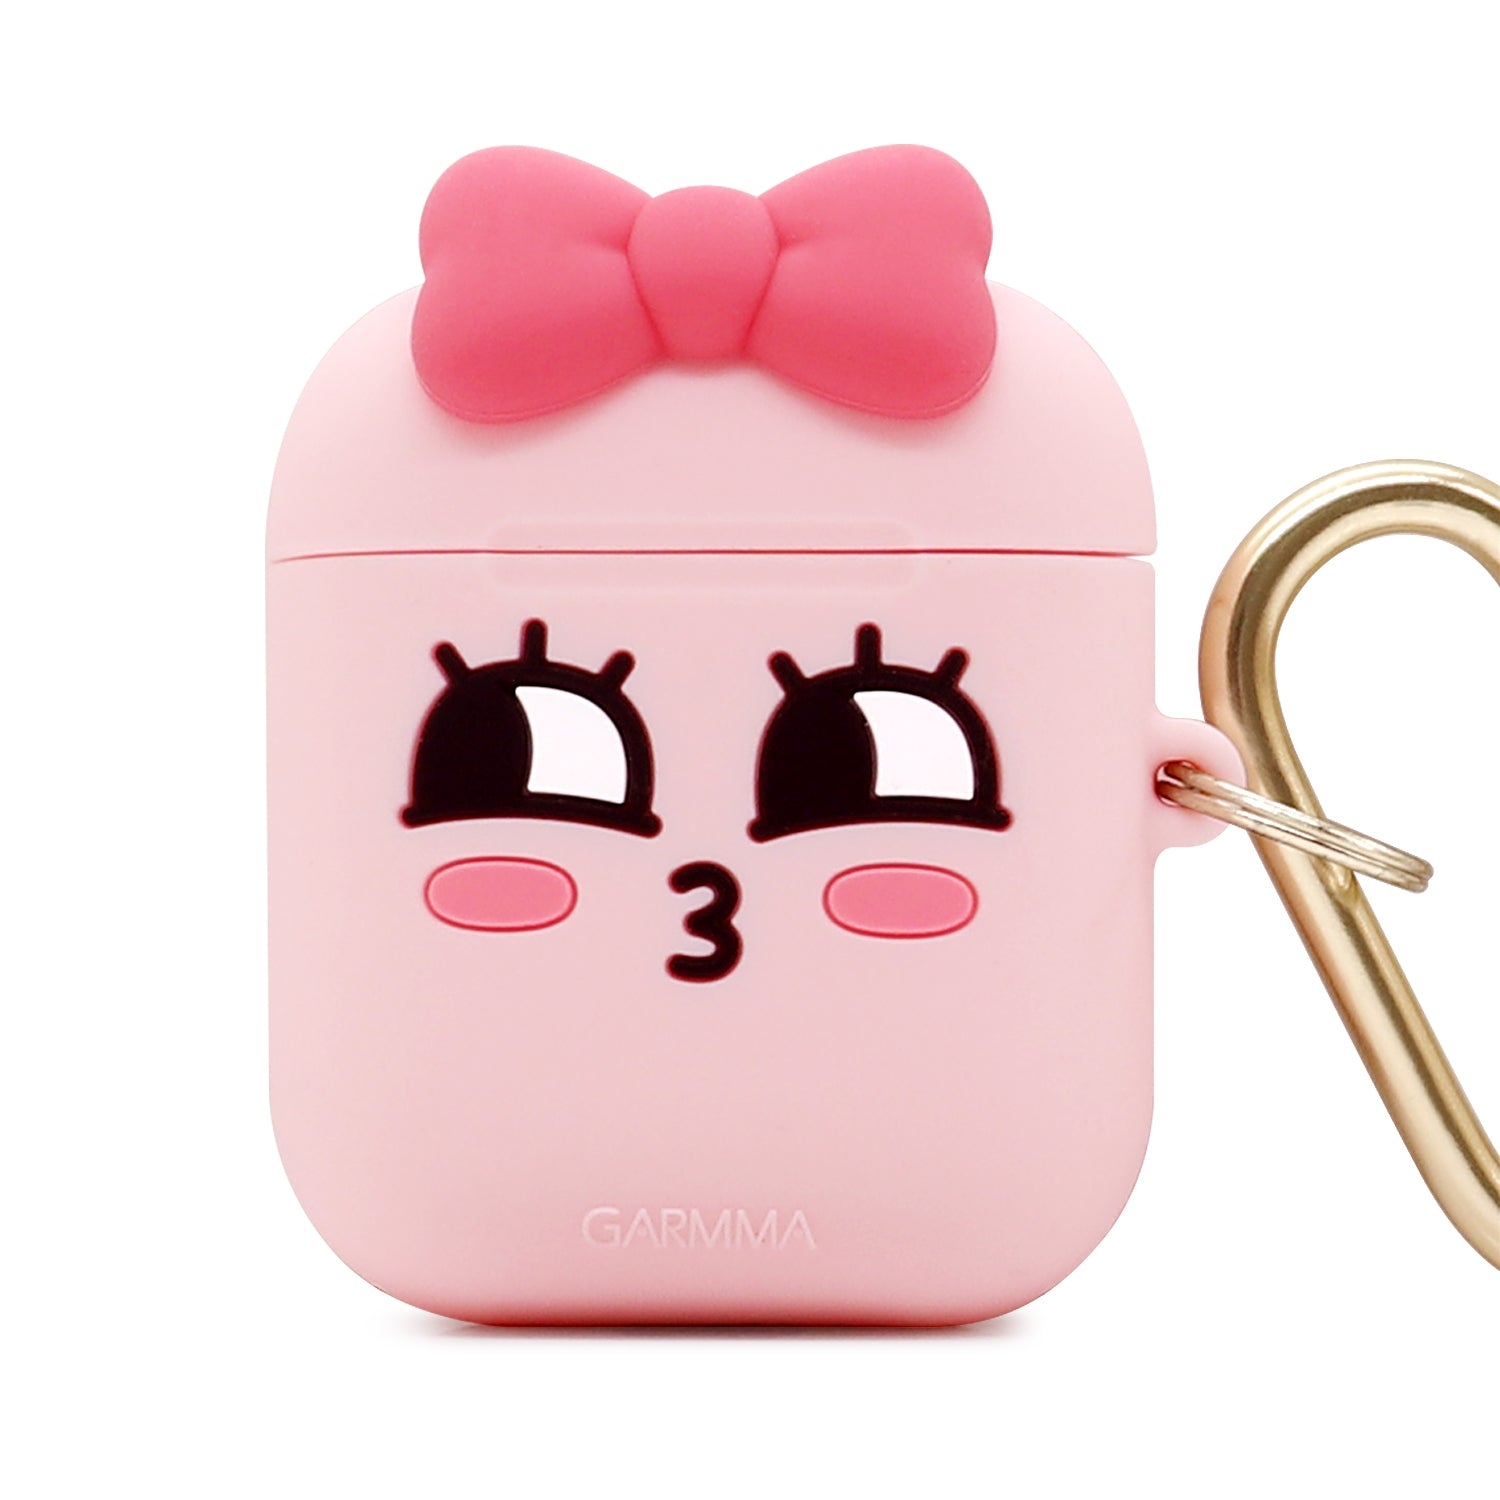 GARMMA Kakao Friends Shockproof Apple AirPods 2&1 Charging Case Cover with Carabiner Clip